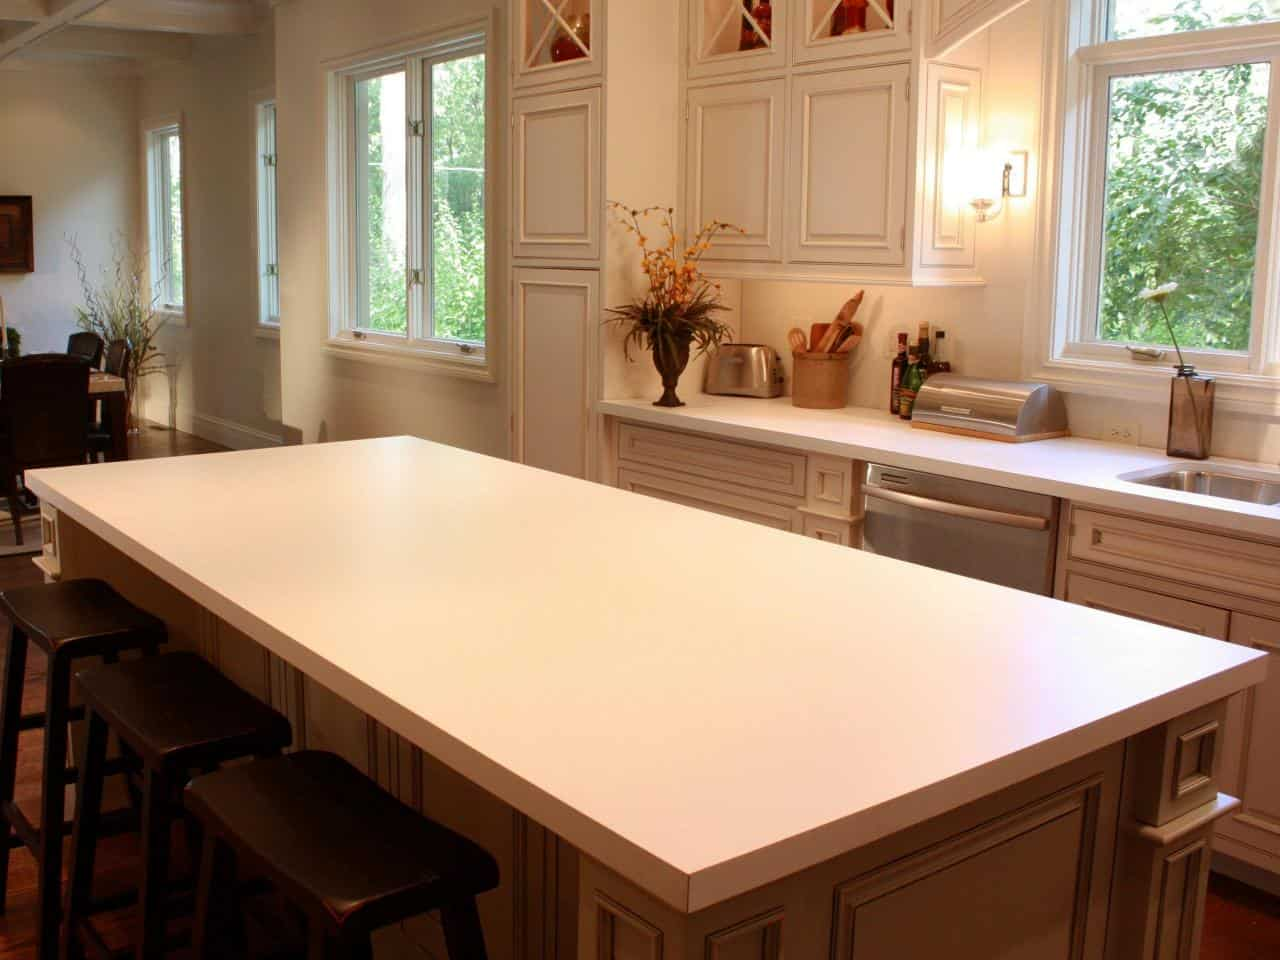 Simple light painted laminate countertops